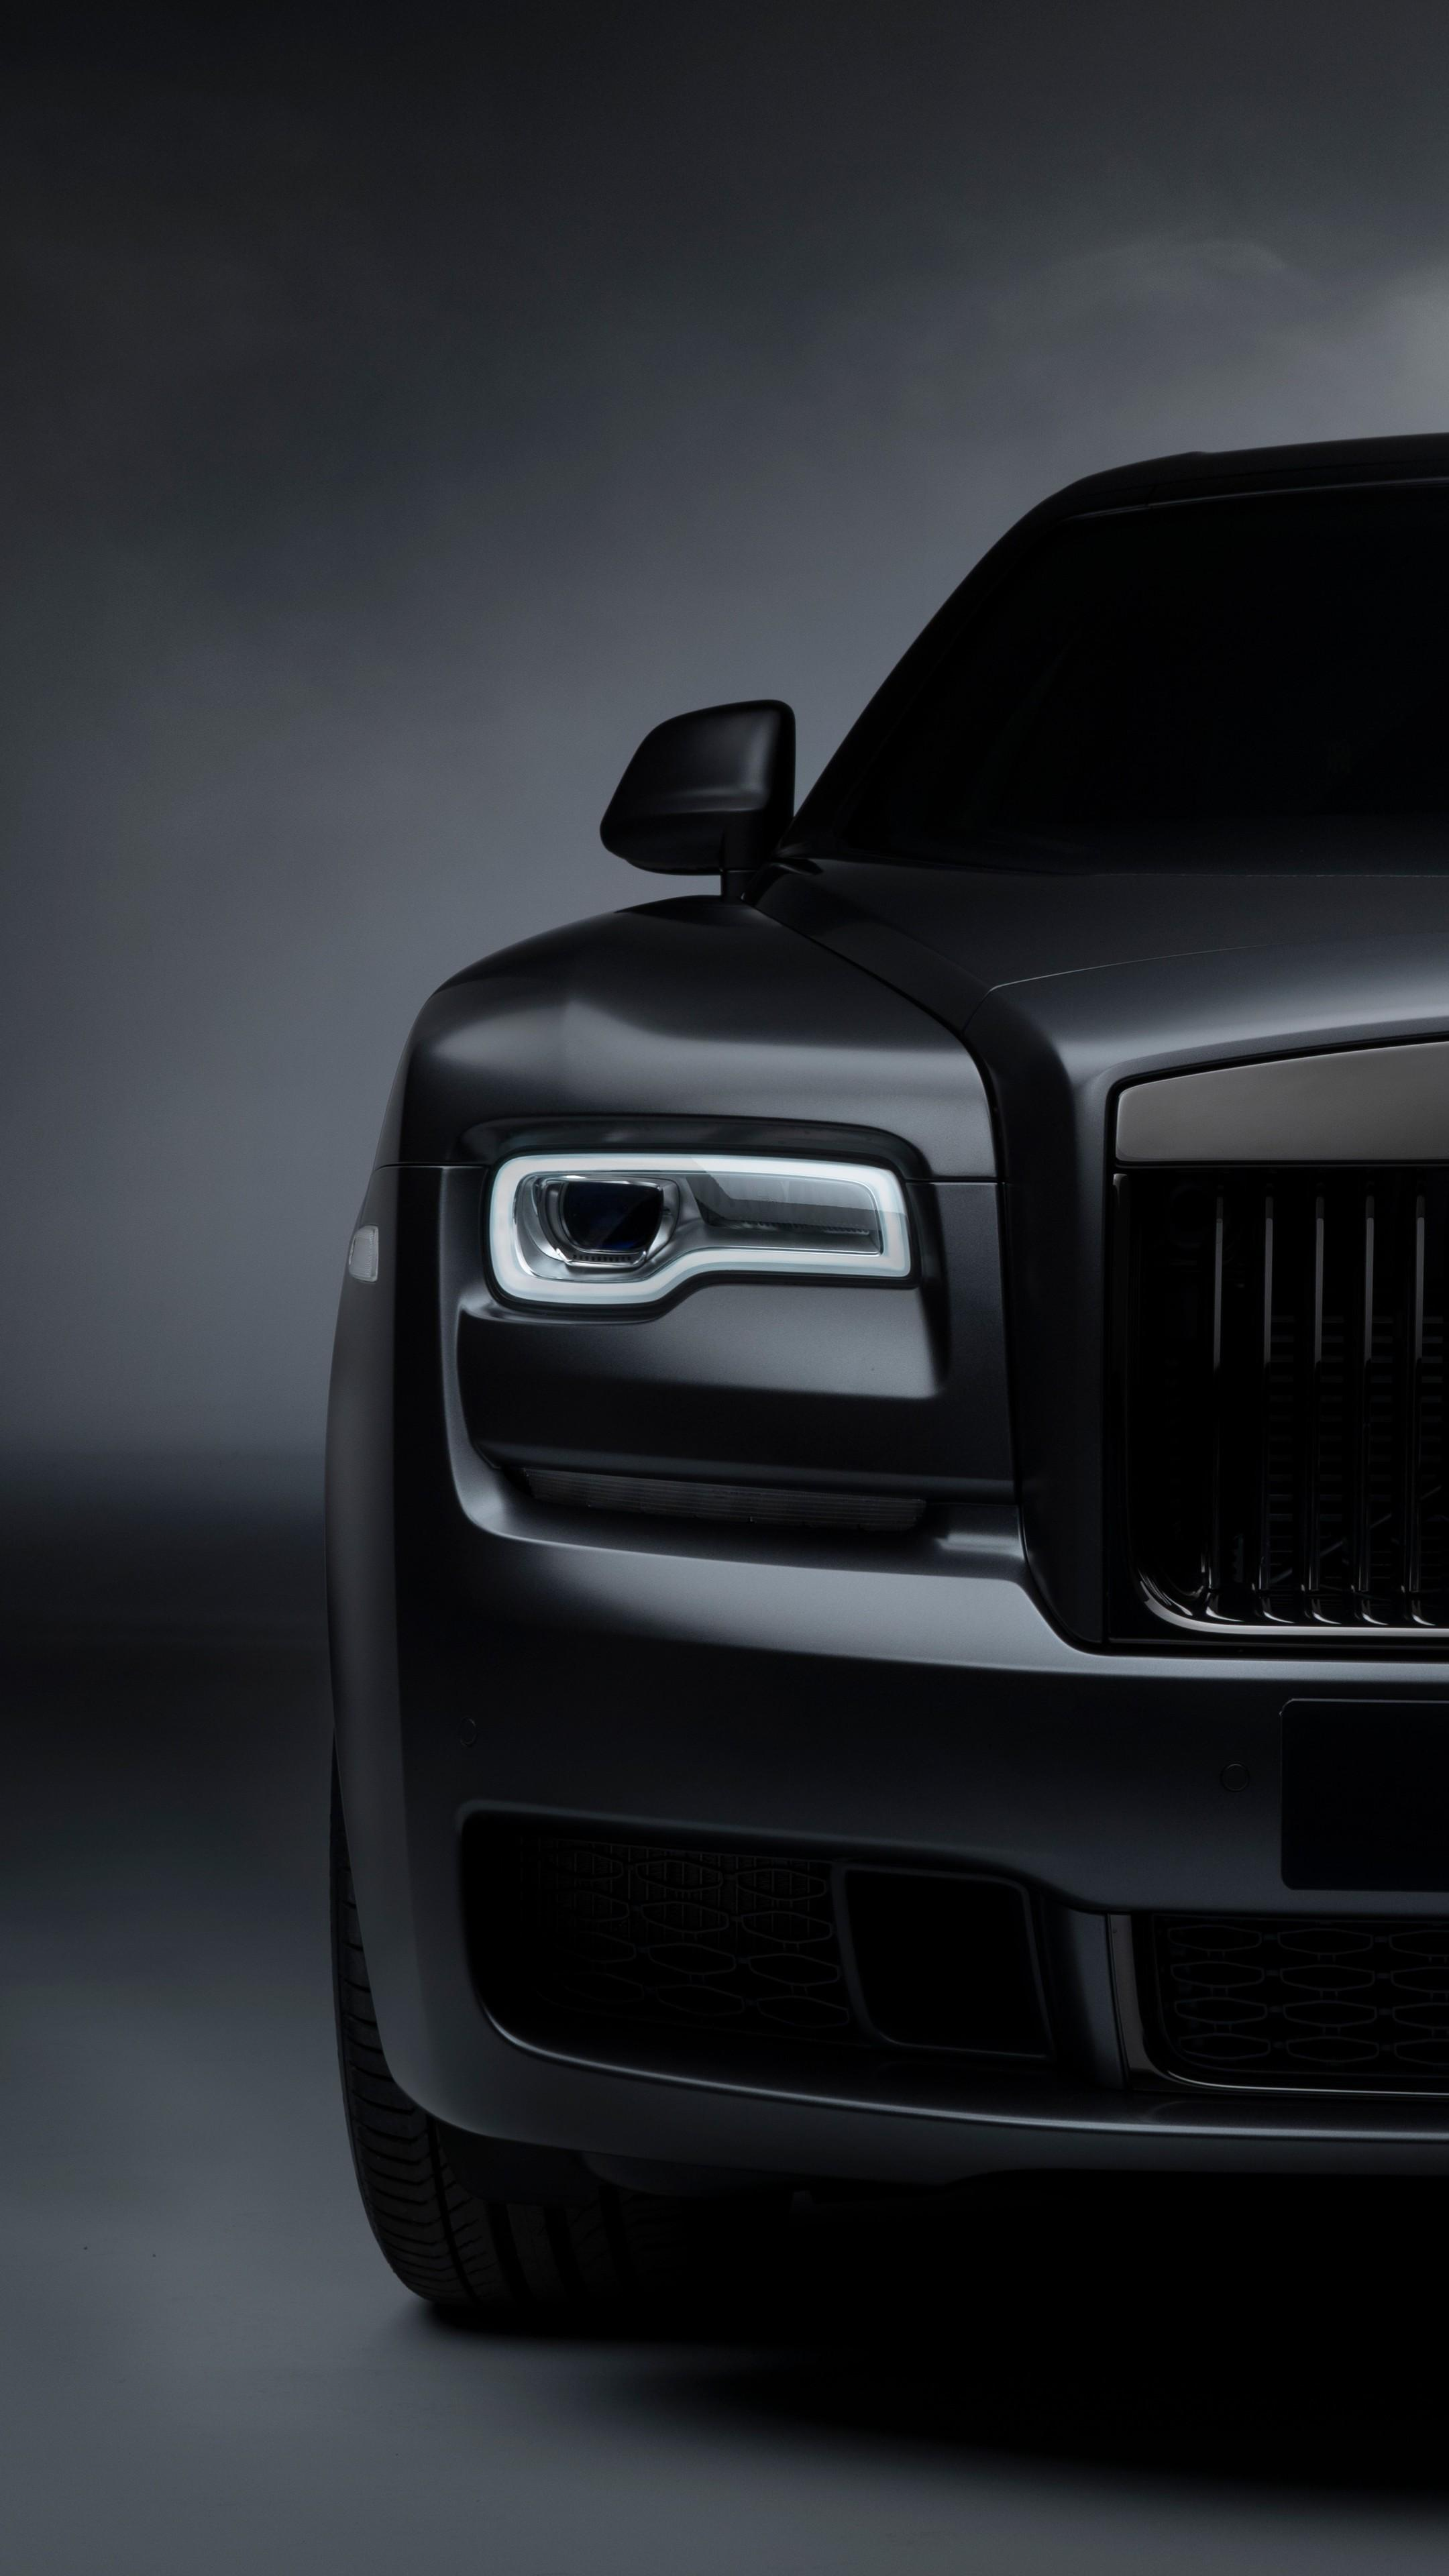 Rolls Royce Cullinan Black Badge 2019 Wallpapers Wallpaper Cave